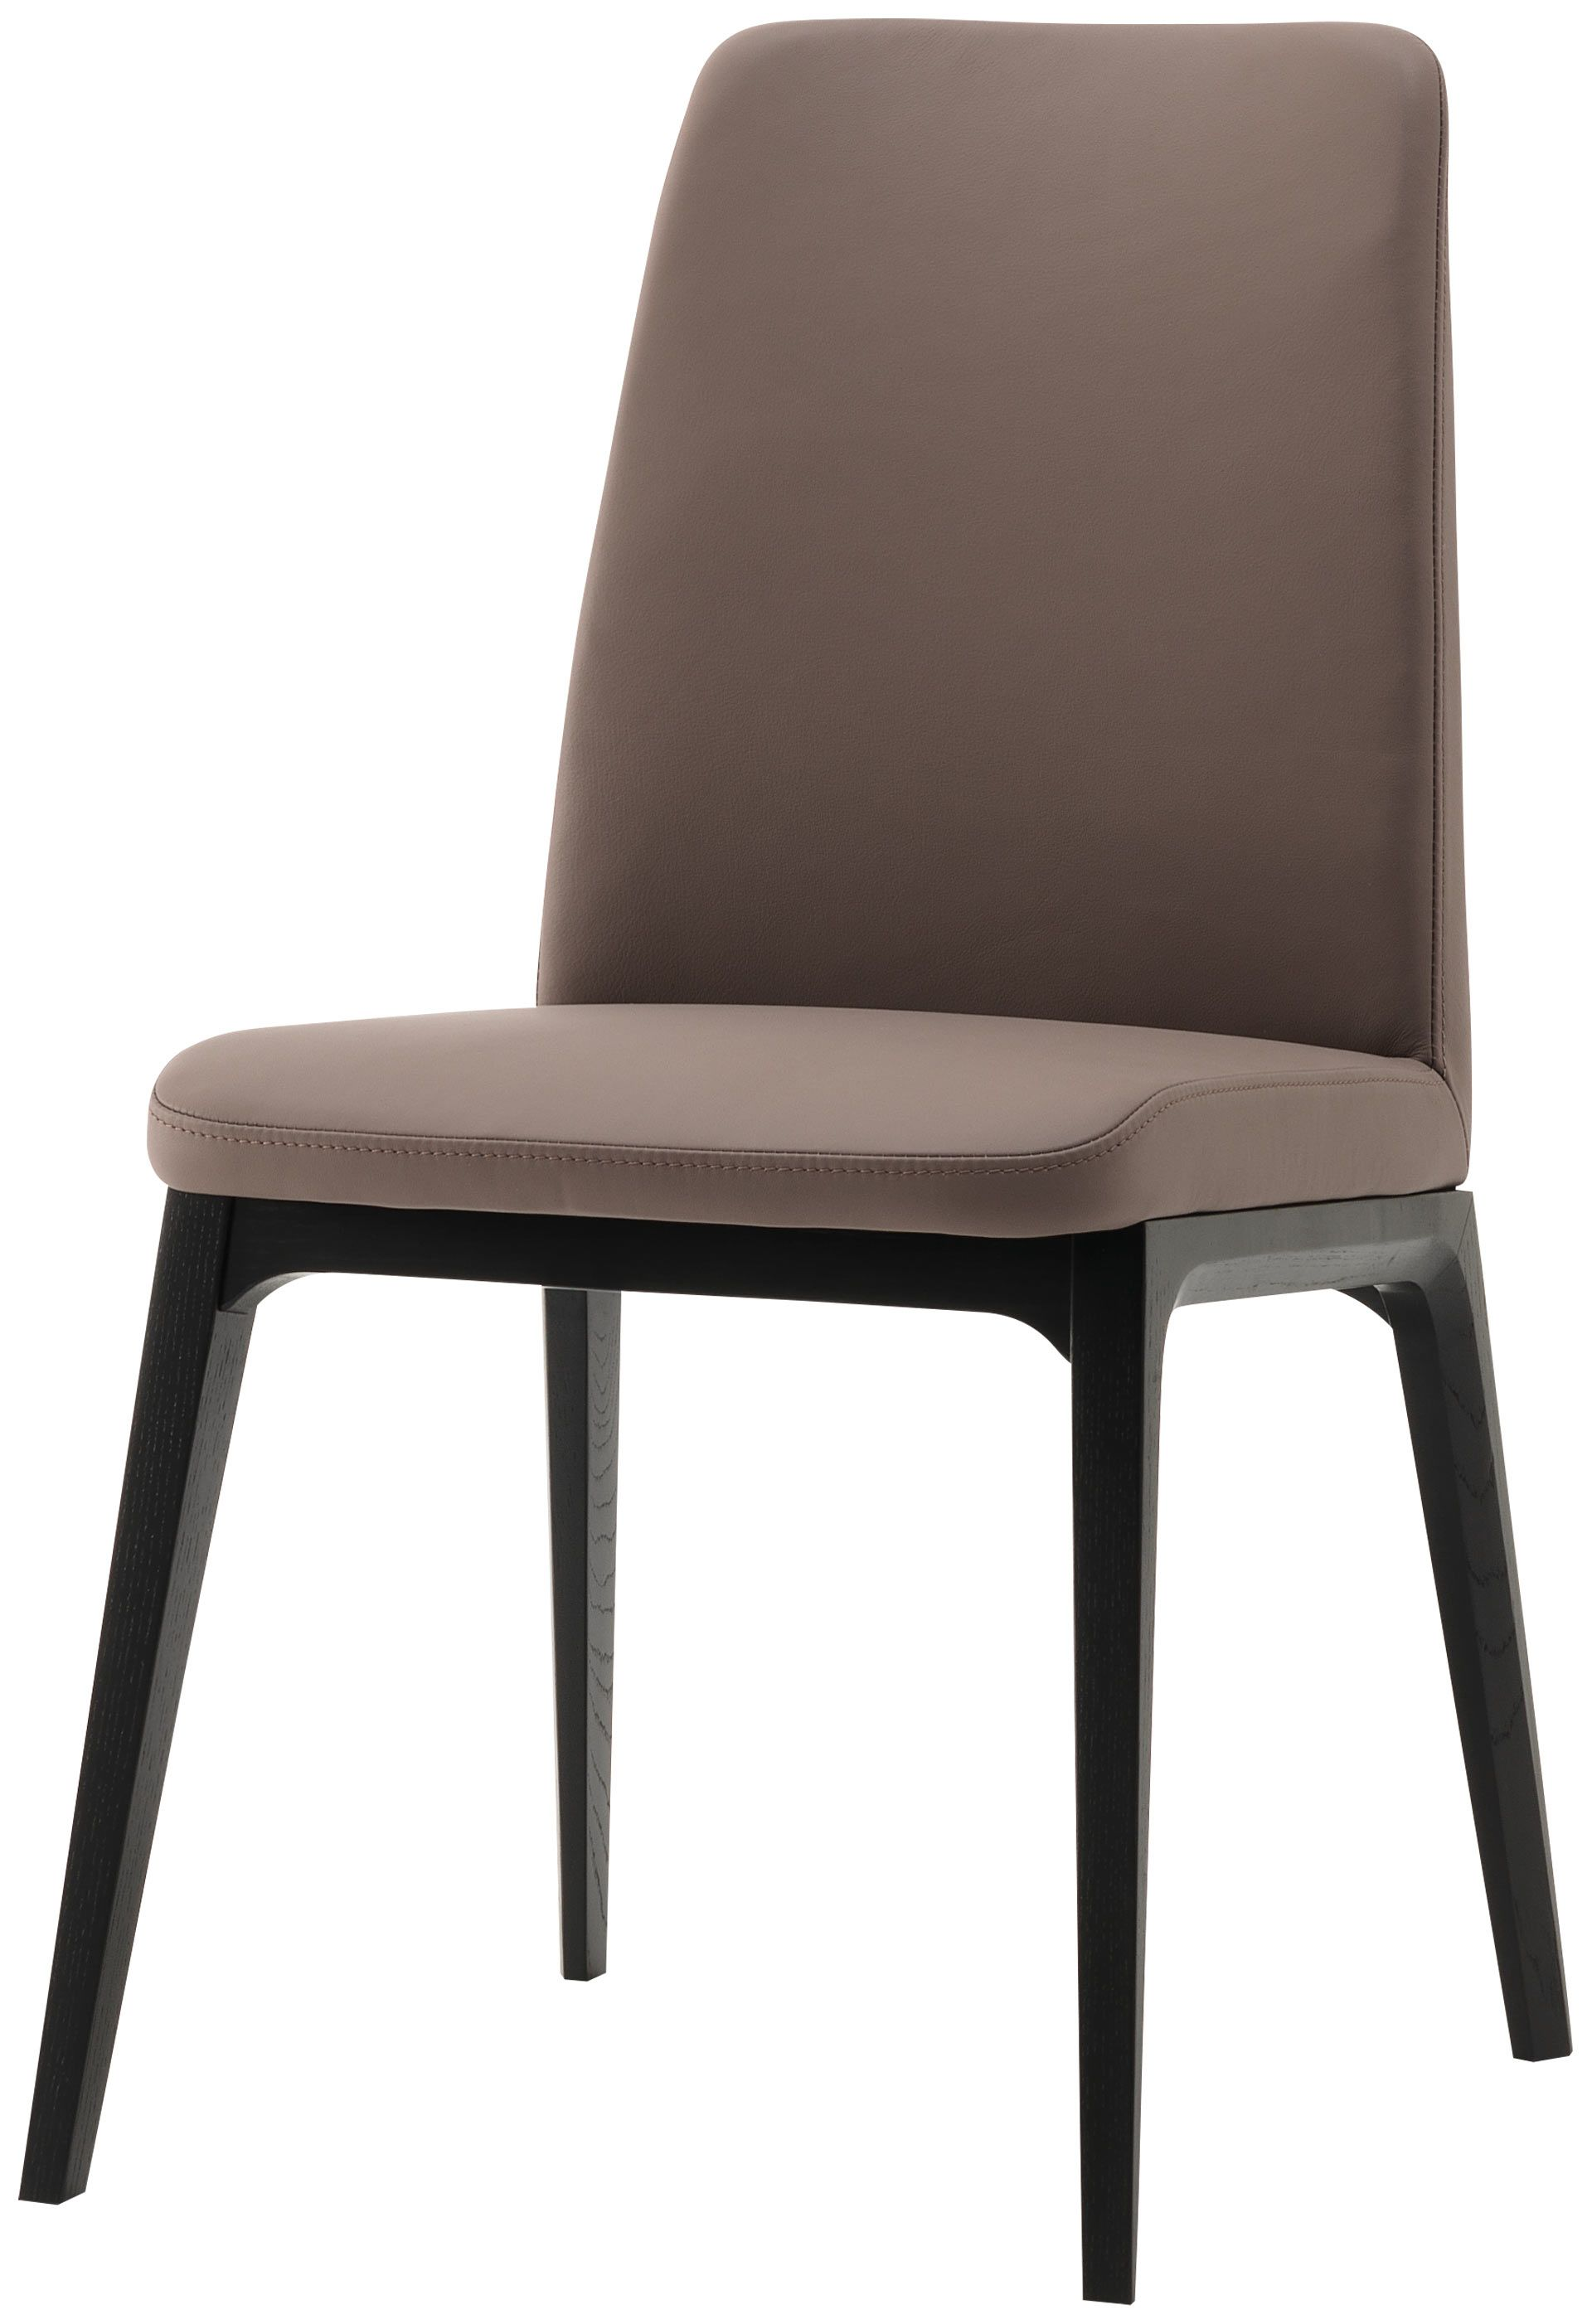 Lausanne dining chair bahia stone leather black stained for Modern dining tables and chairs sydney